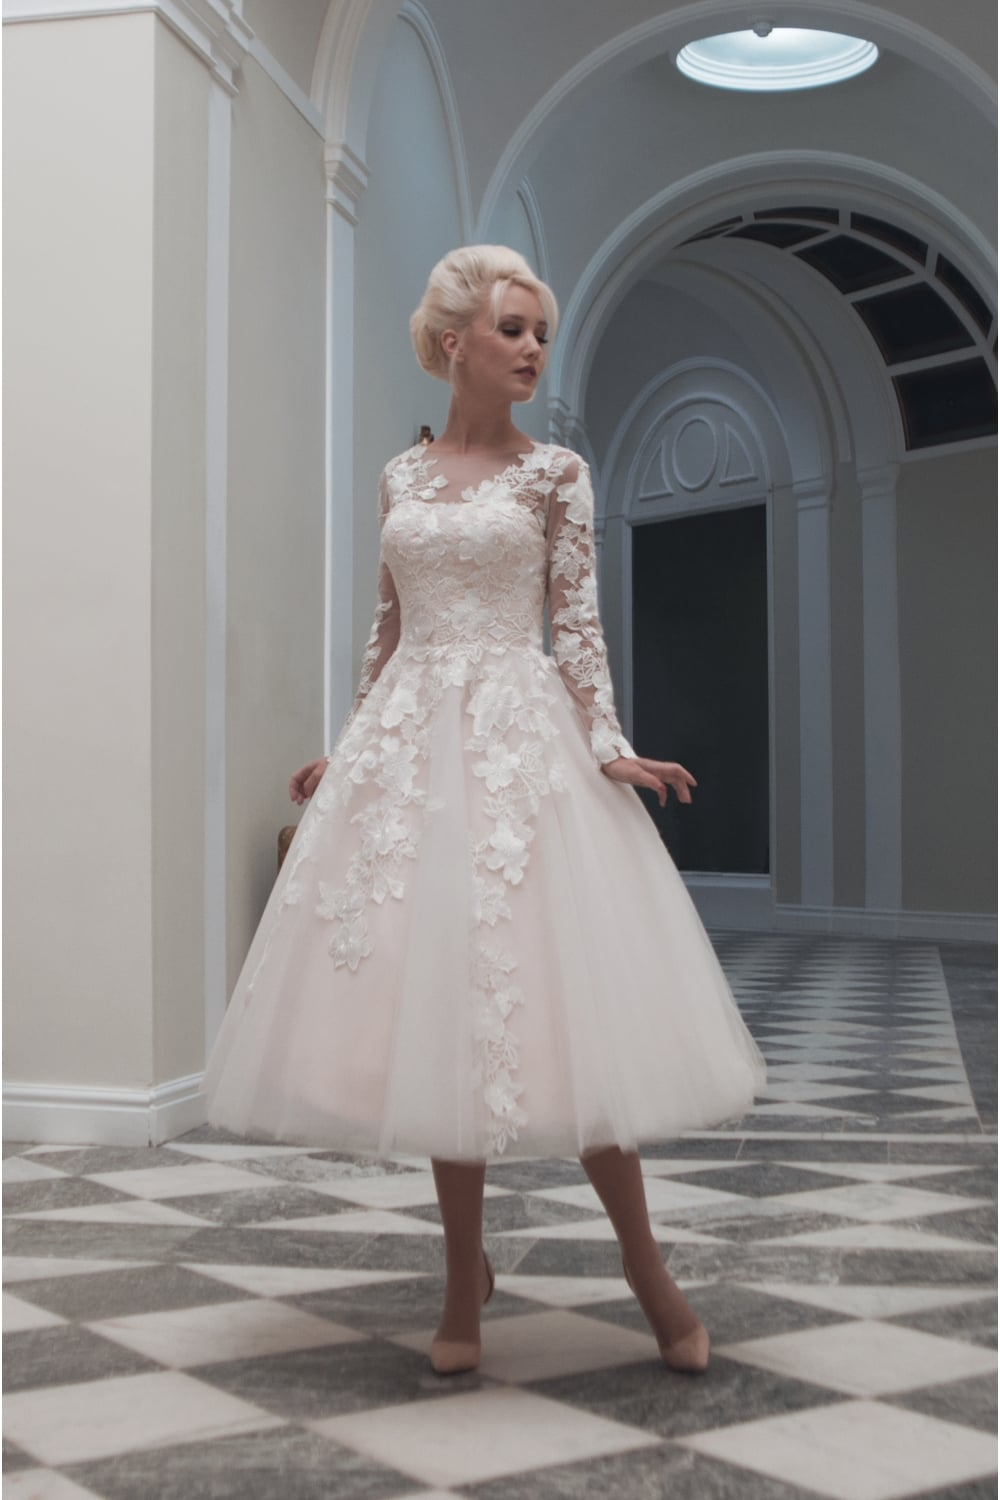 Lace Wedding Dress With Sleeves.Charlotte Vintage Tea Calf Length Lace Short Wedding Dress With Sleeves